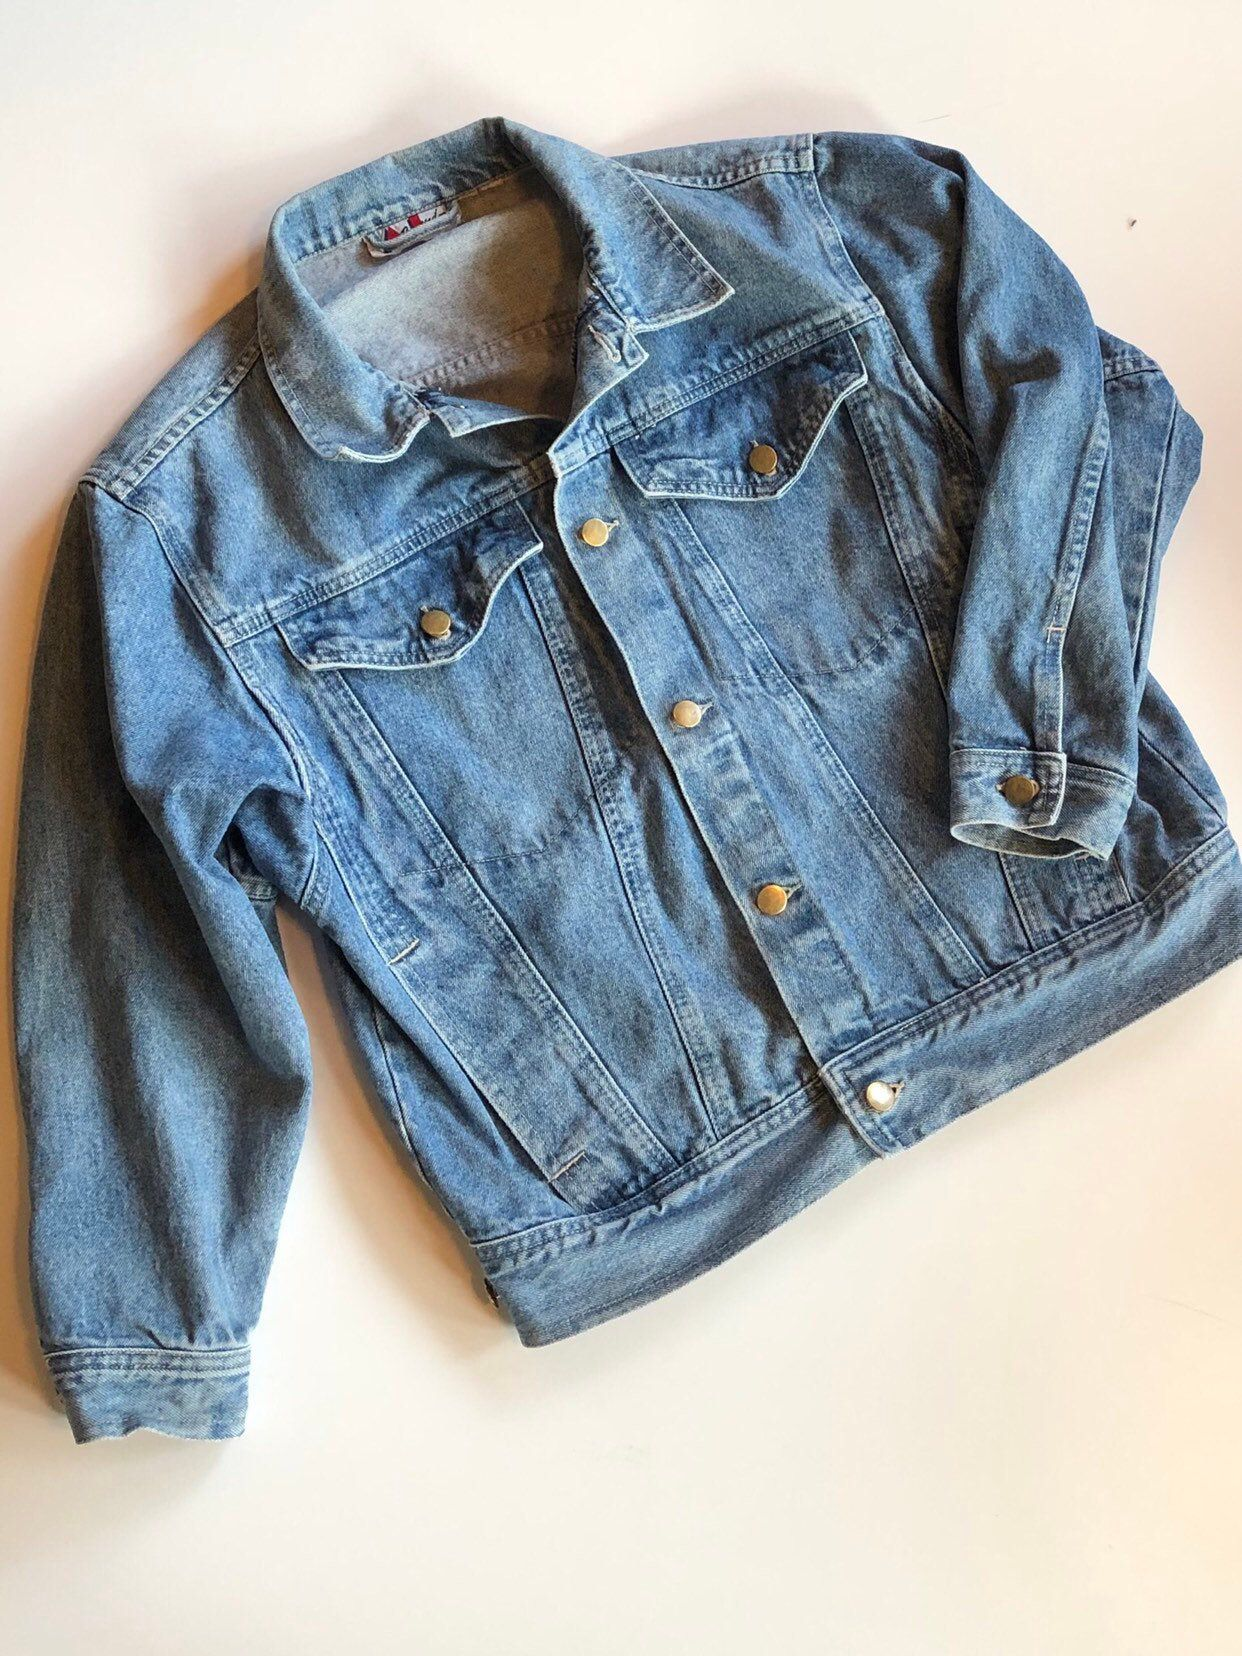 Vintage 1980s Jean Jacket Small Distressed Faded Denim Etsy In 2021 Denim Jacket Women Vintage Denim Jacket Vintage Jean Jacket [ 1656 x 1242 Pixel ]